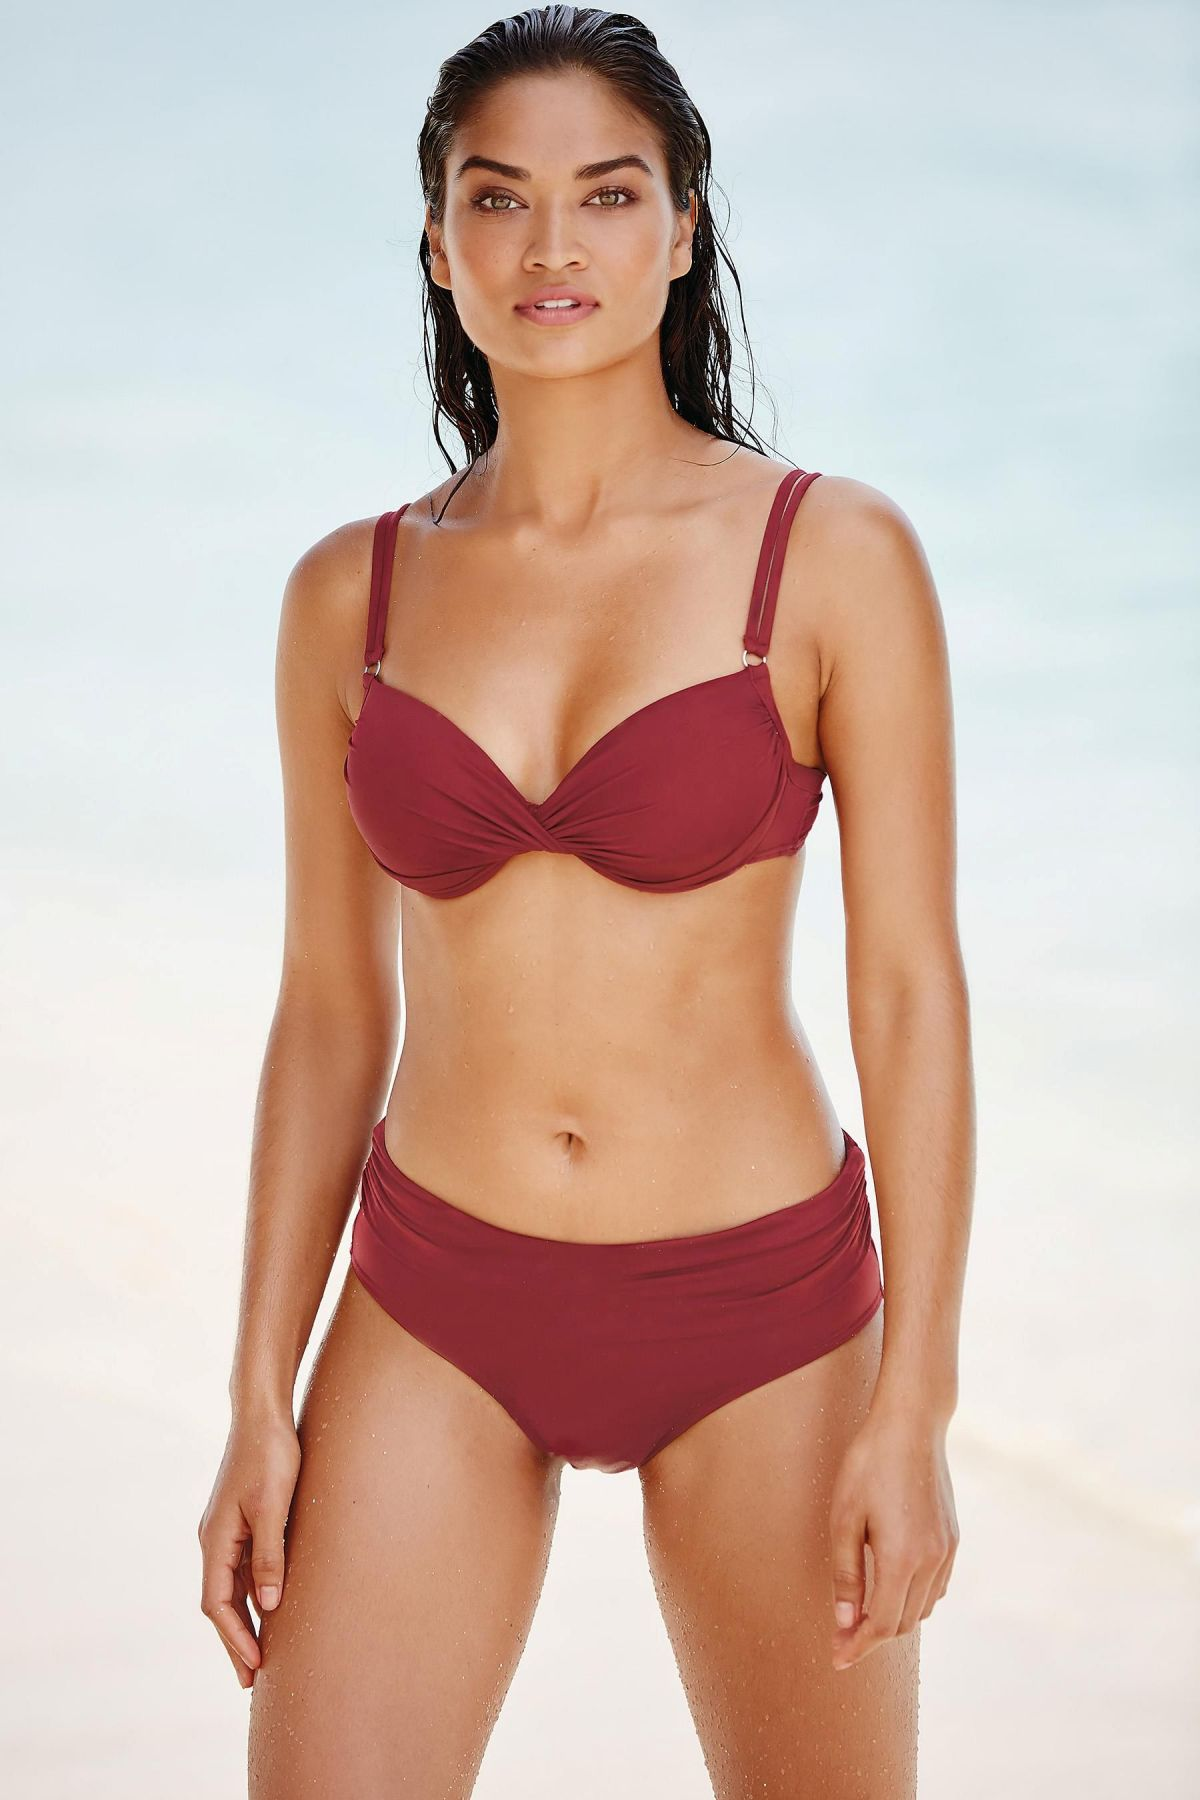 SHANINA SHAIK for Next Swimwear and Beachwear 2016 Collection